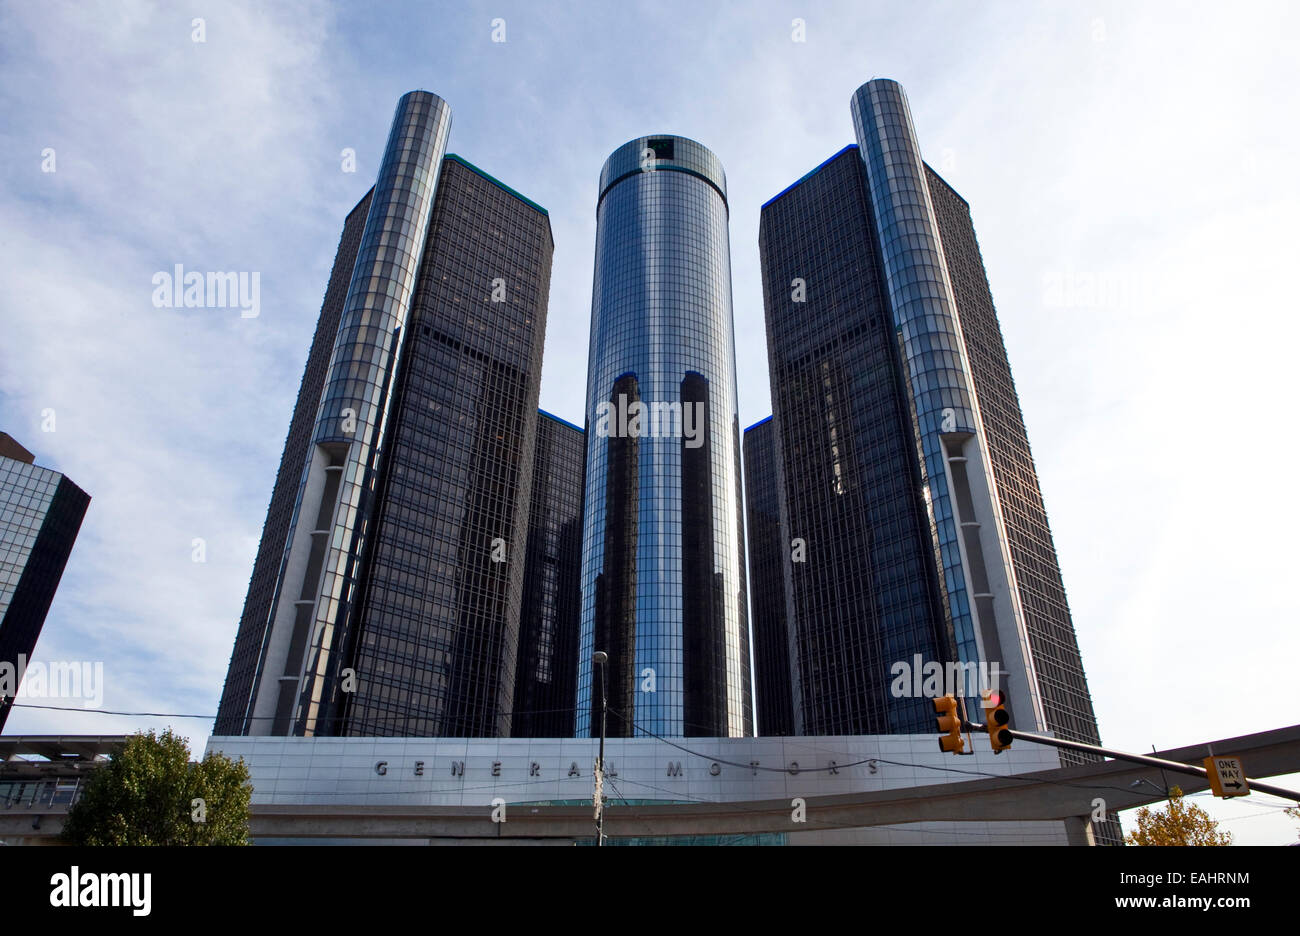 A view of the General Motors headquarters in downtown